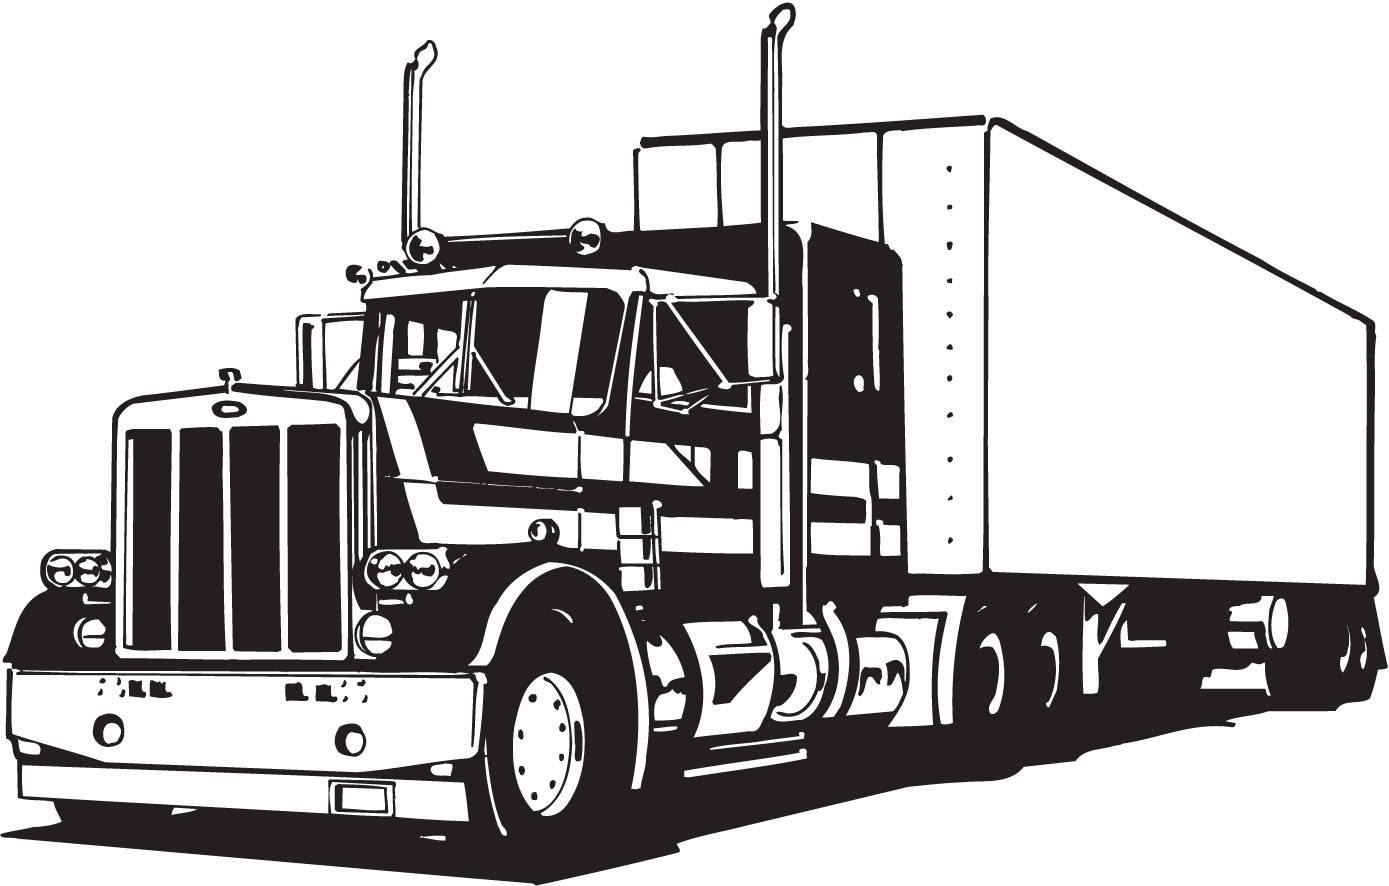 Free 18 Wheeler Truck Silhouette, Download Free Clip Art, Free Clip ... vector royalty free download